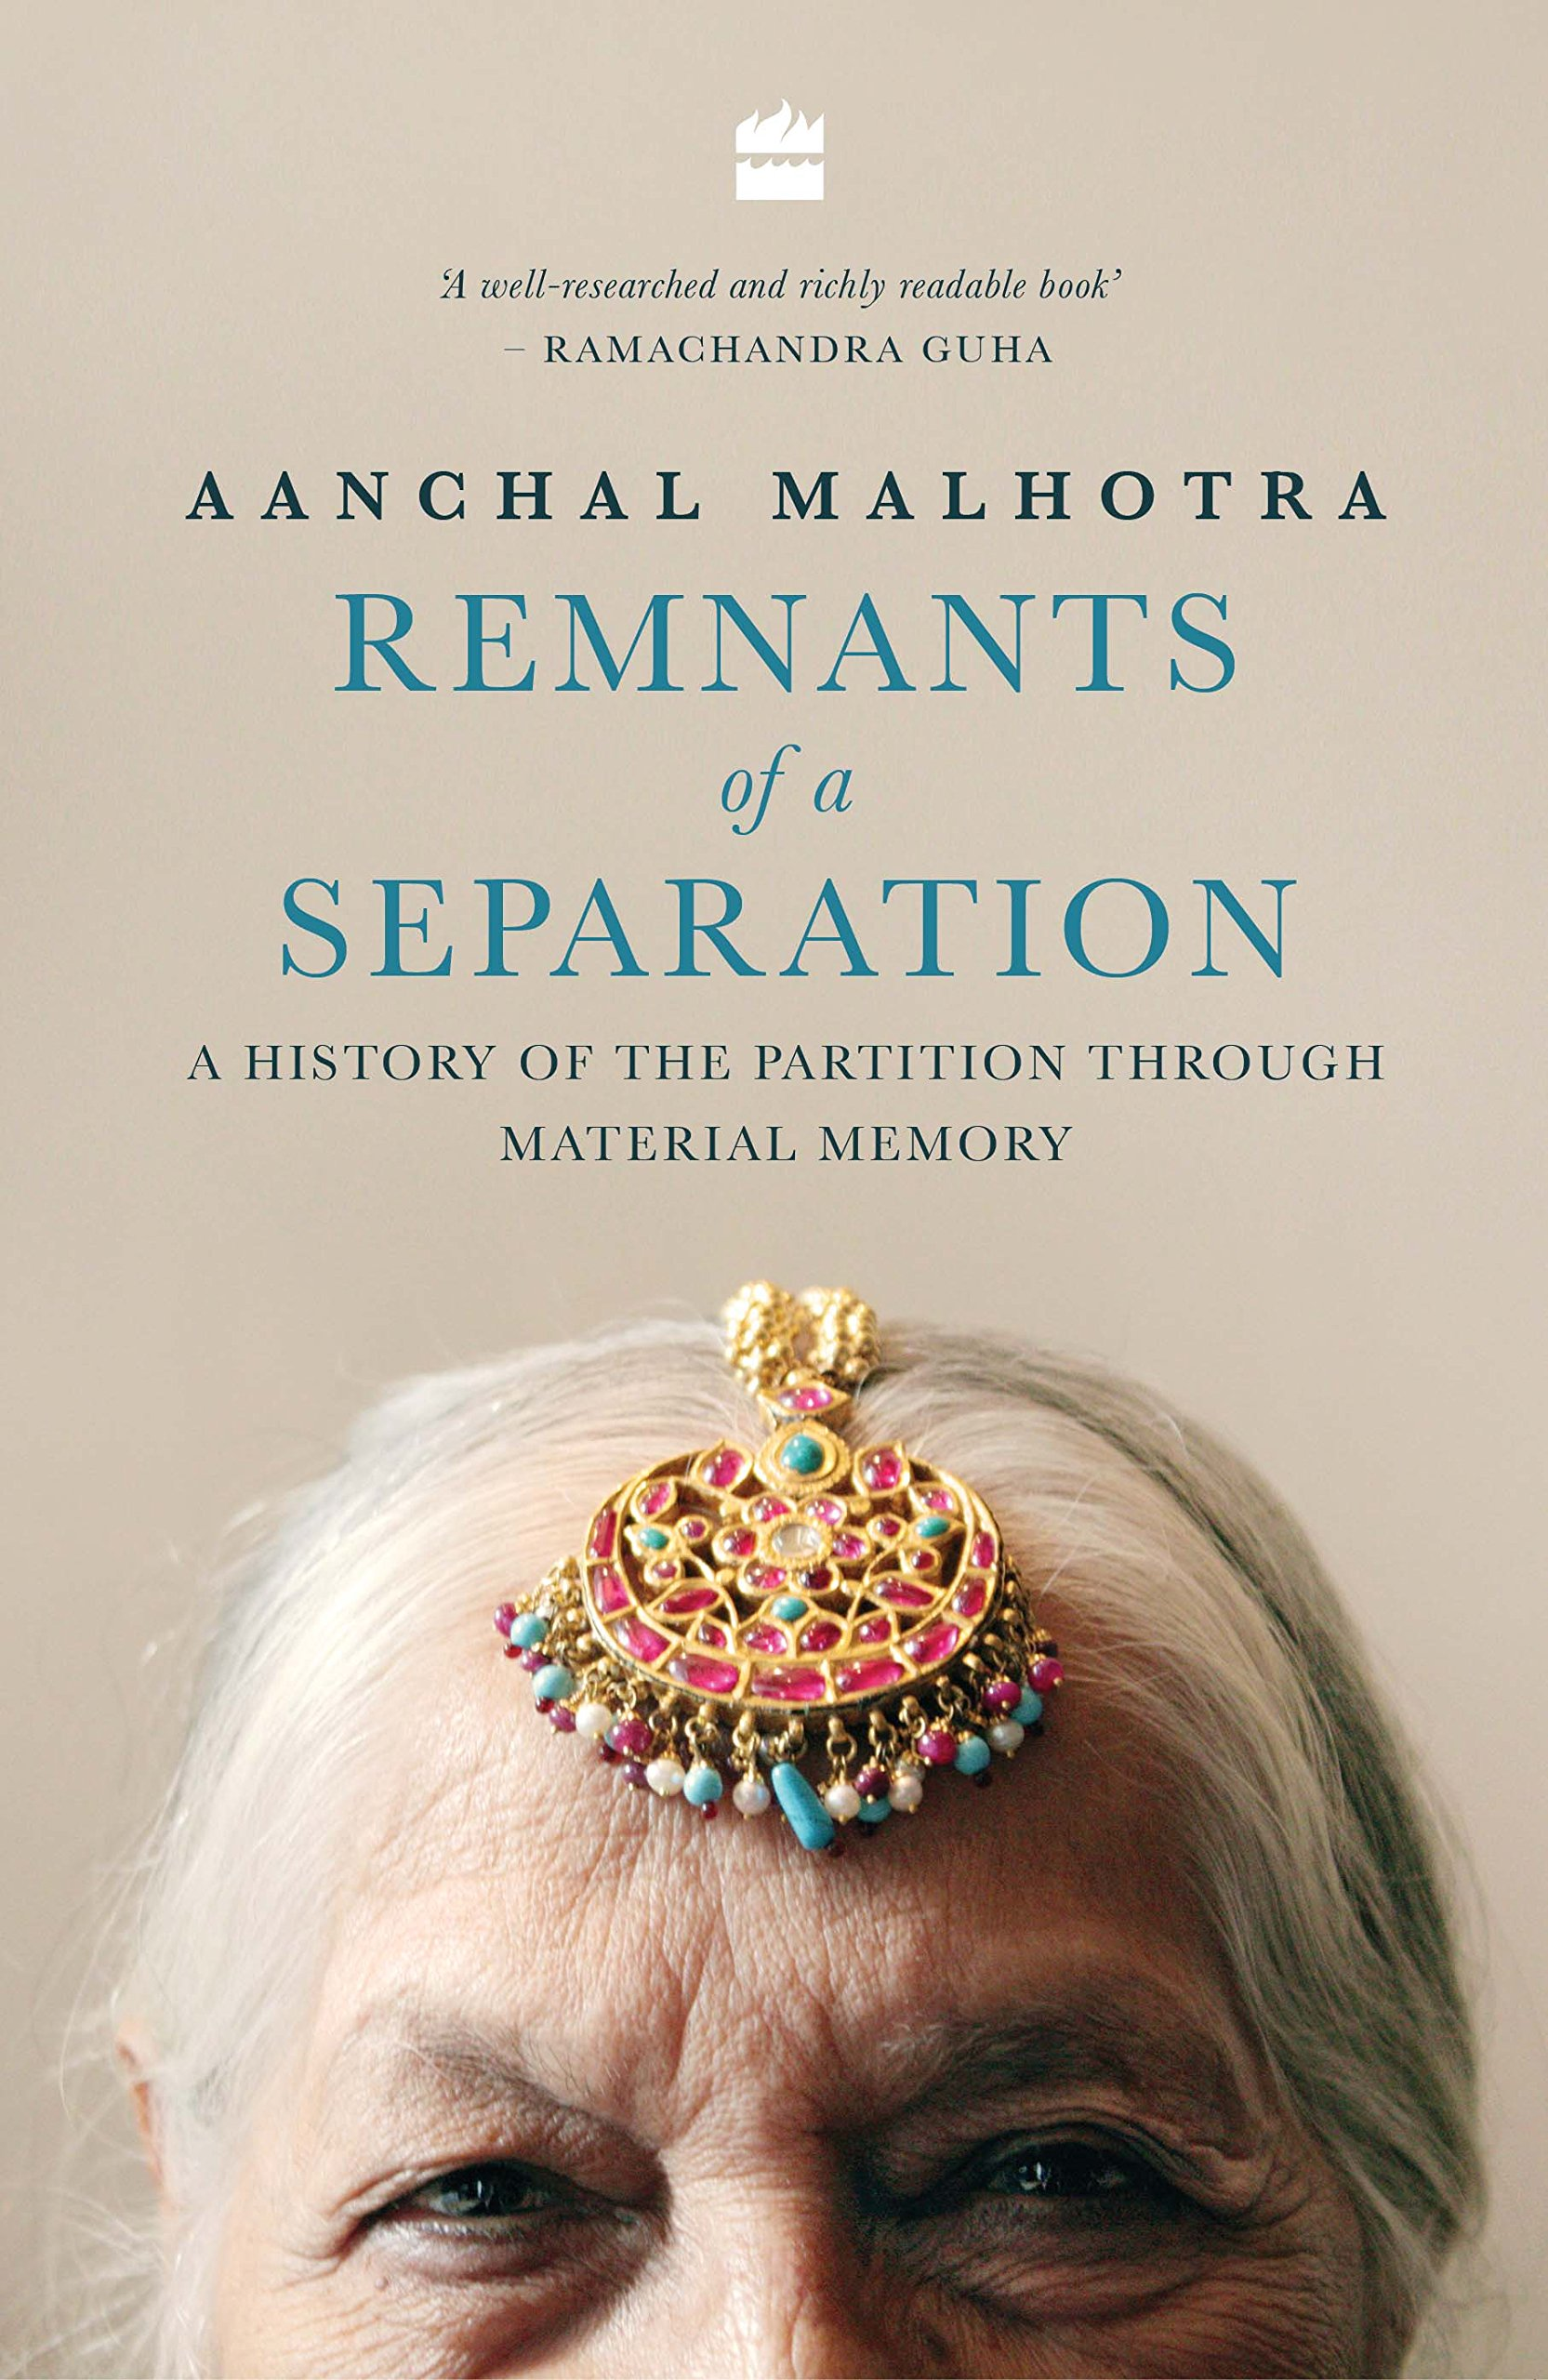 Buy Remnants of a Separation: A History of the Partition